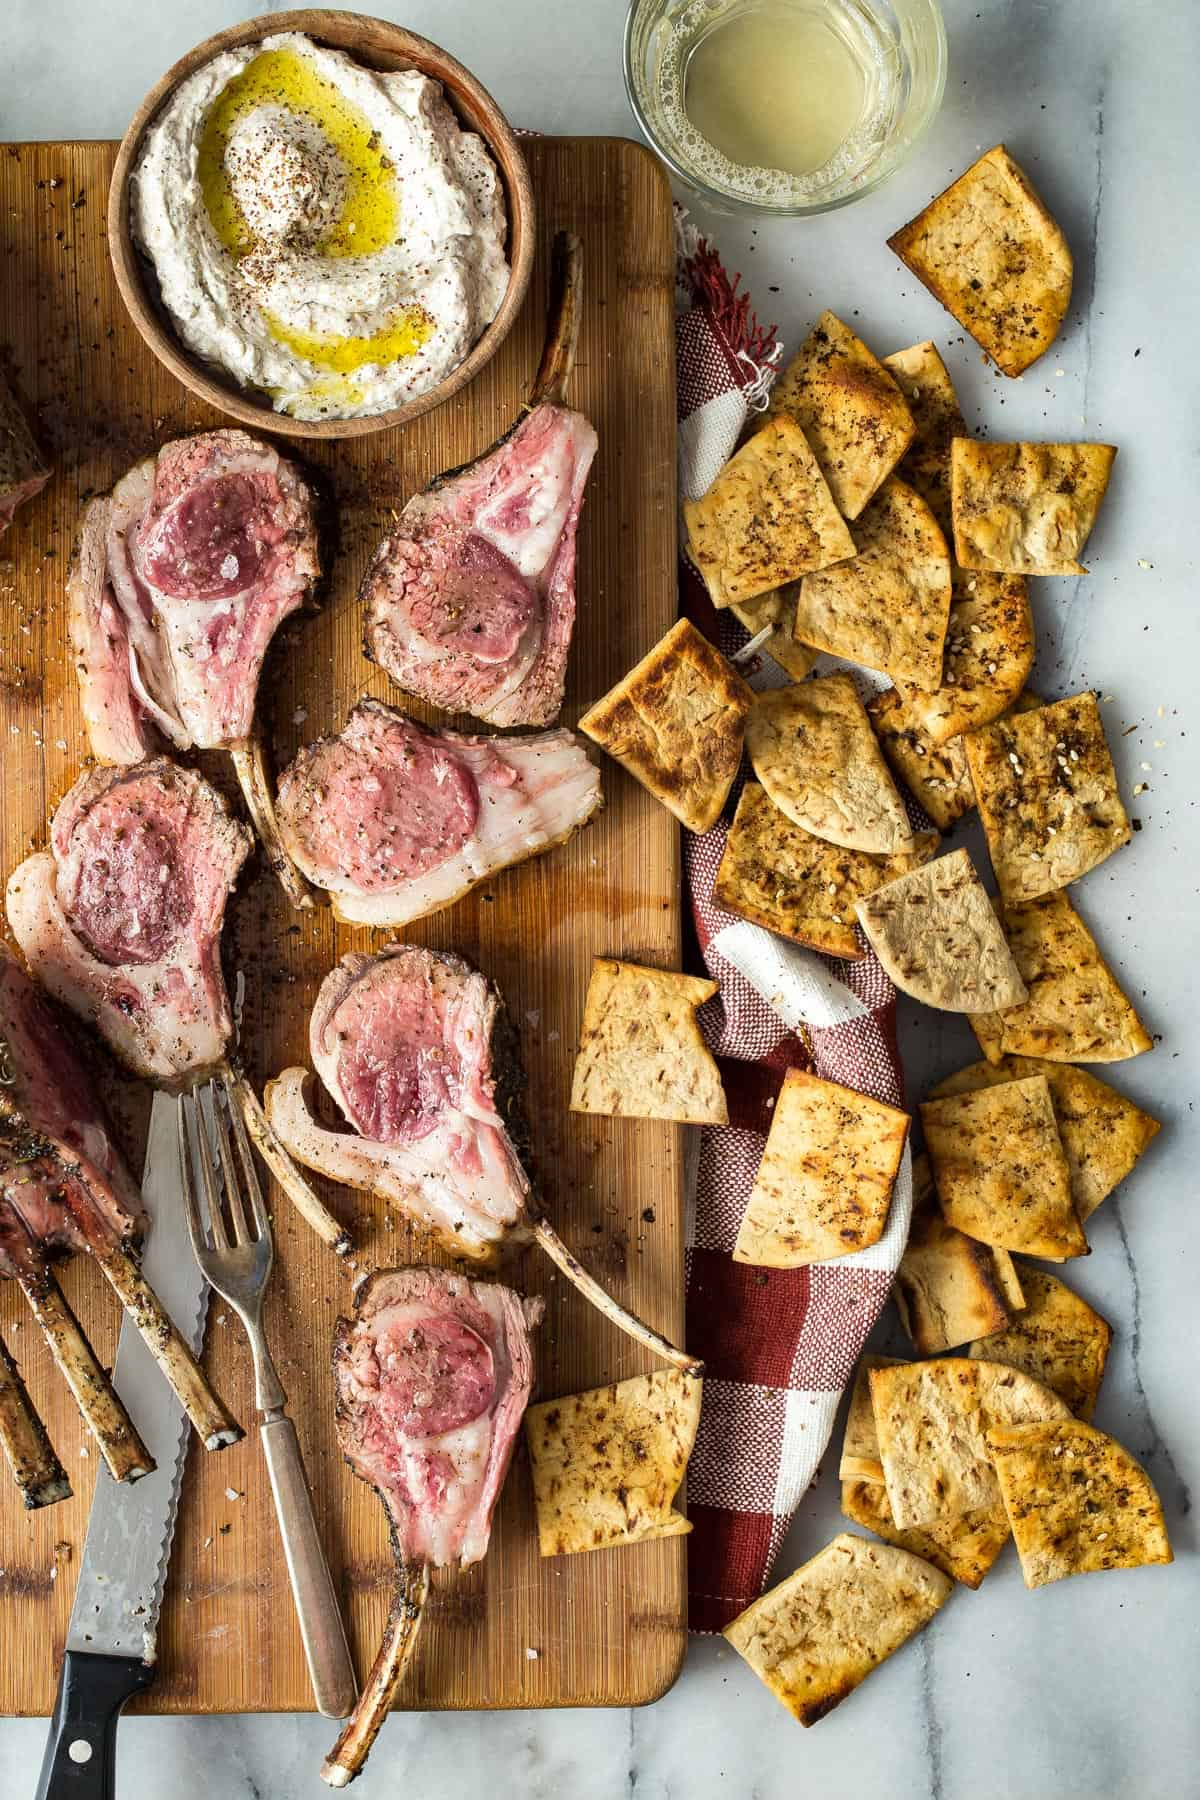 Lamb Chops with Za'atar and Olive Oil Dip